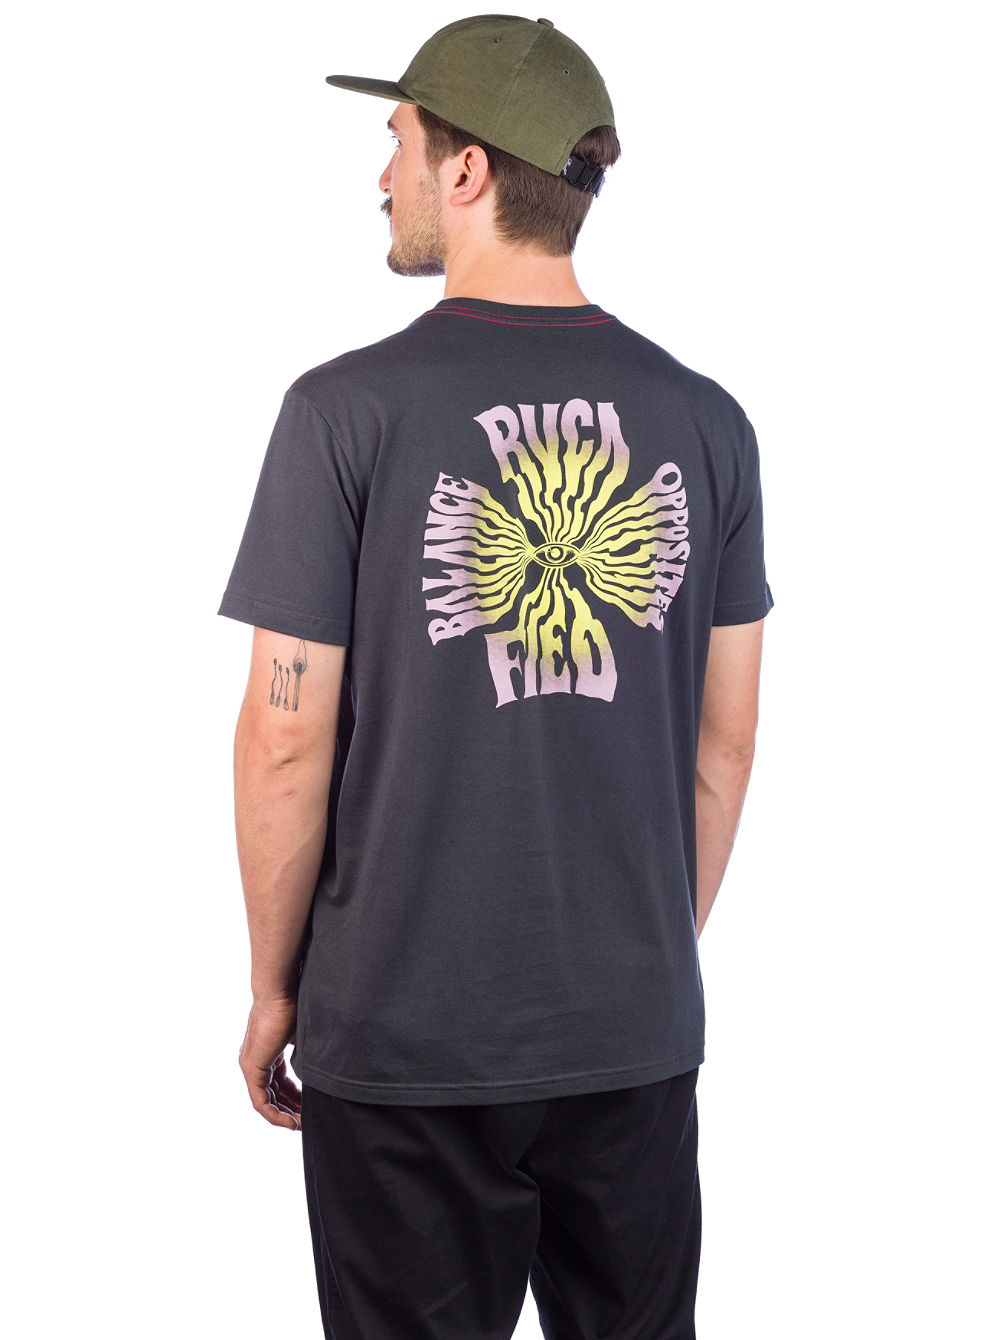 Rvcafied T-Shirt